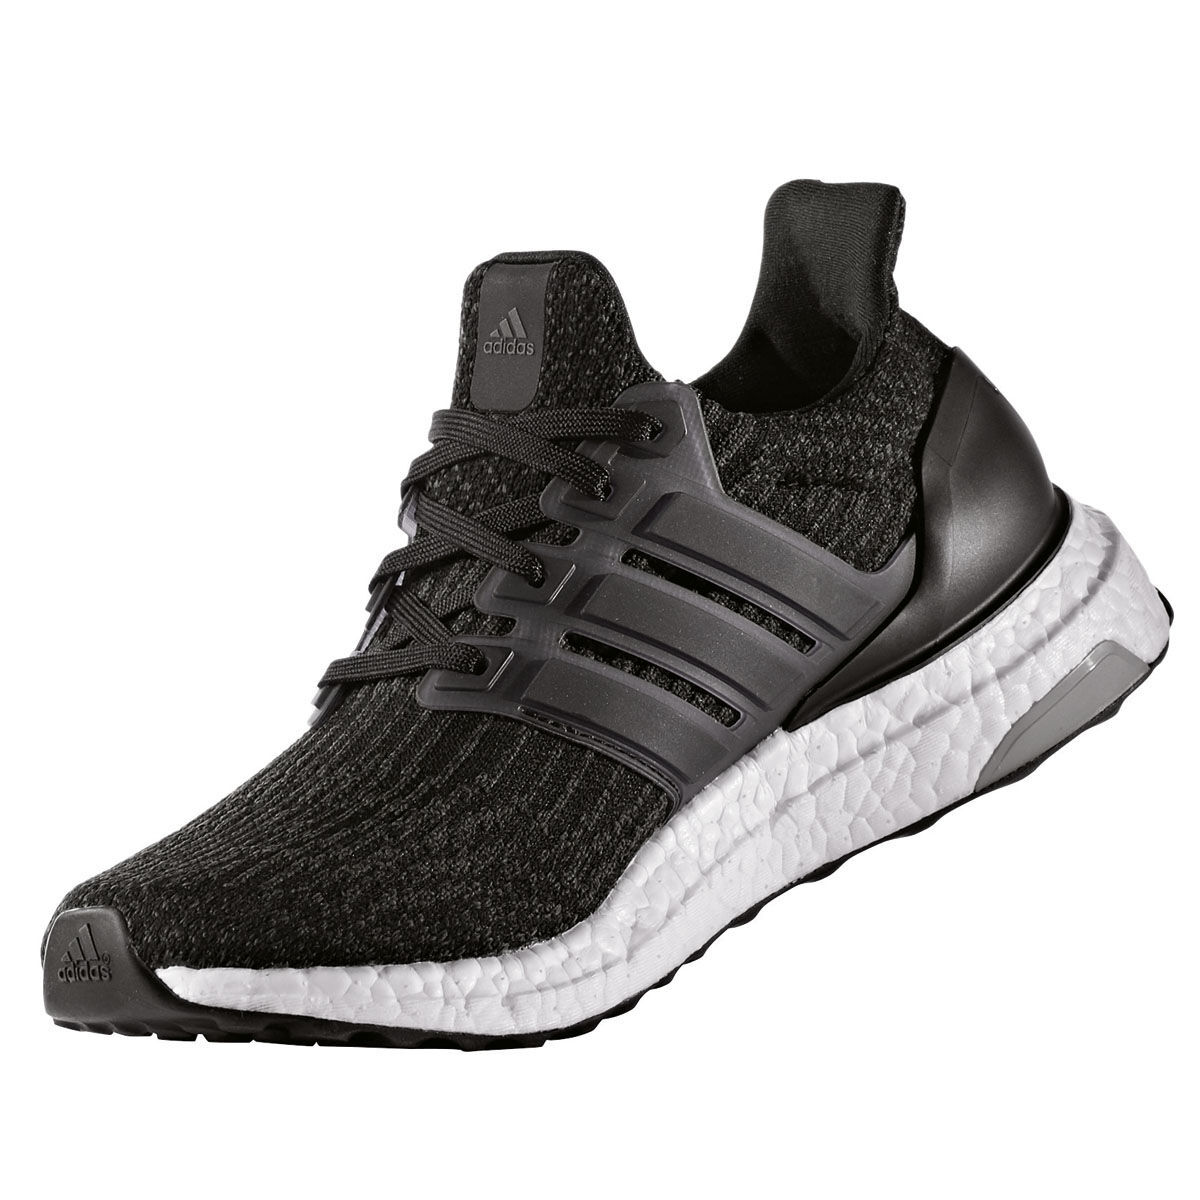 adidas ultra boost damen schuhe schwarz karstadt online. Black Bedroom Furniture Sets. Home Design Ideas